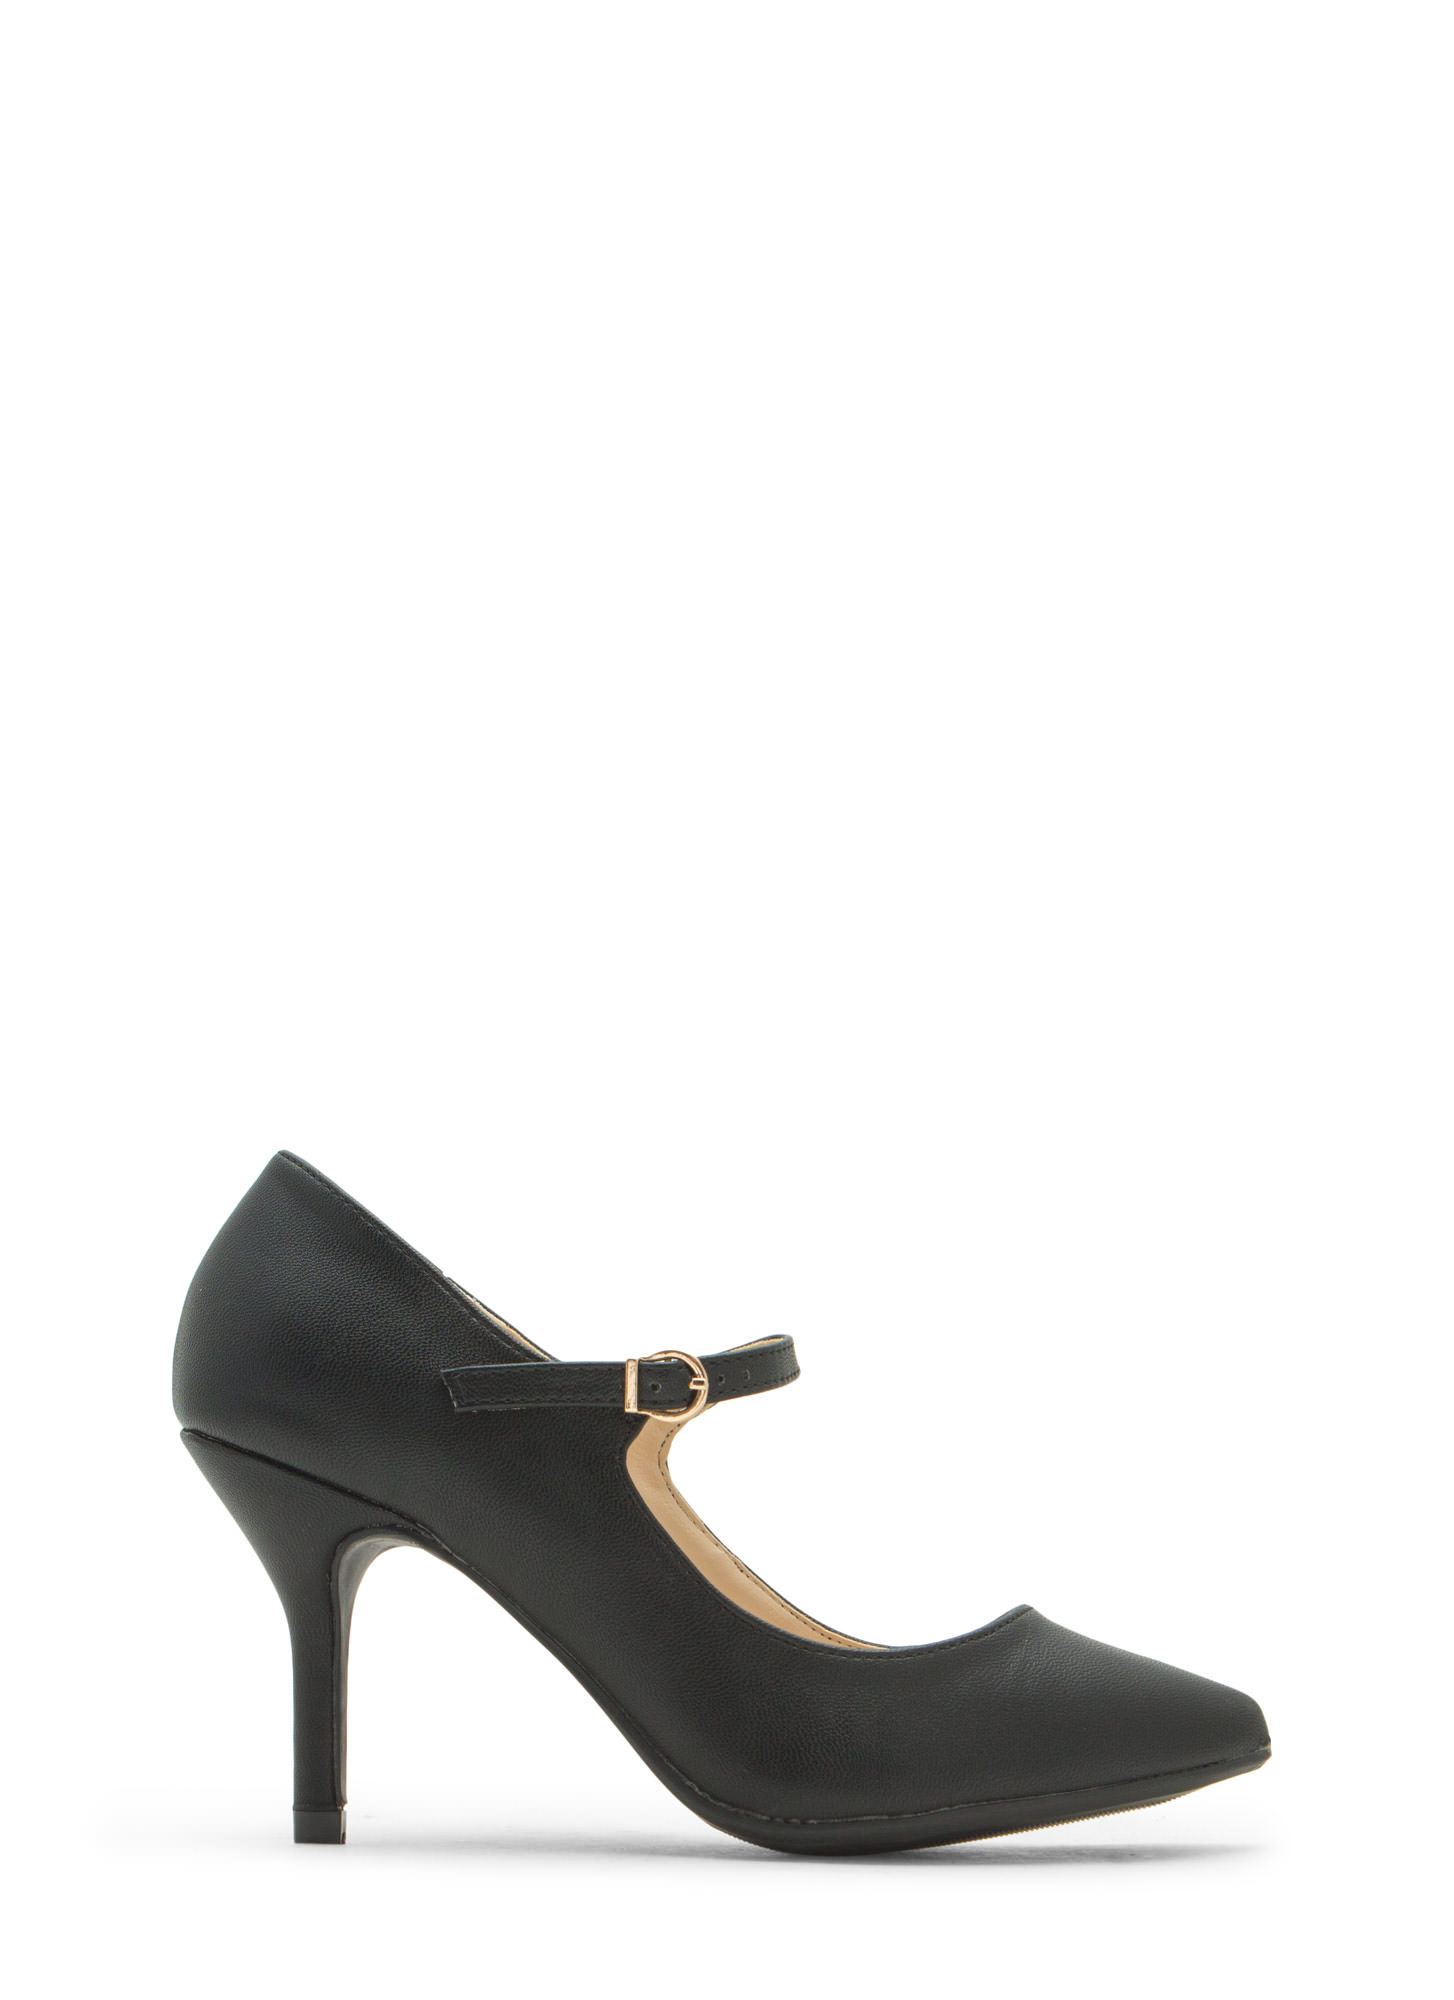 Made 4 Strutting Mary Jane Heels BLACK